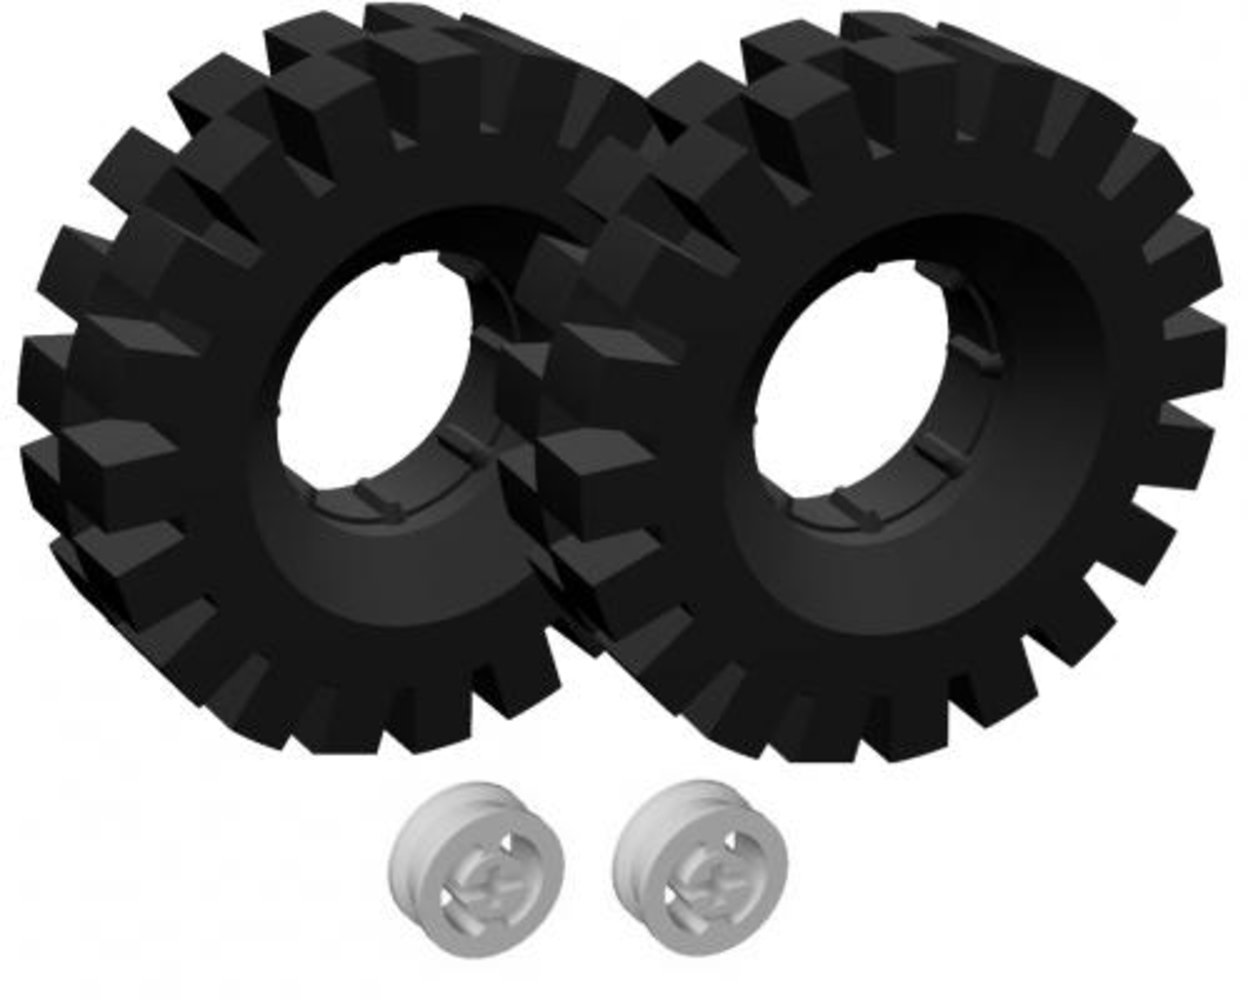 Tires (42 mm) and Hubs